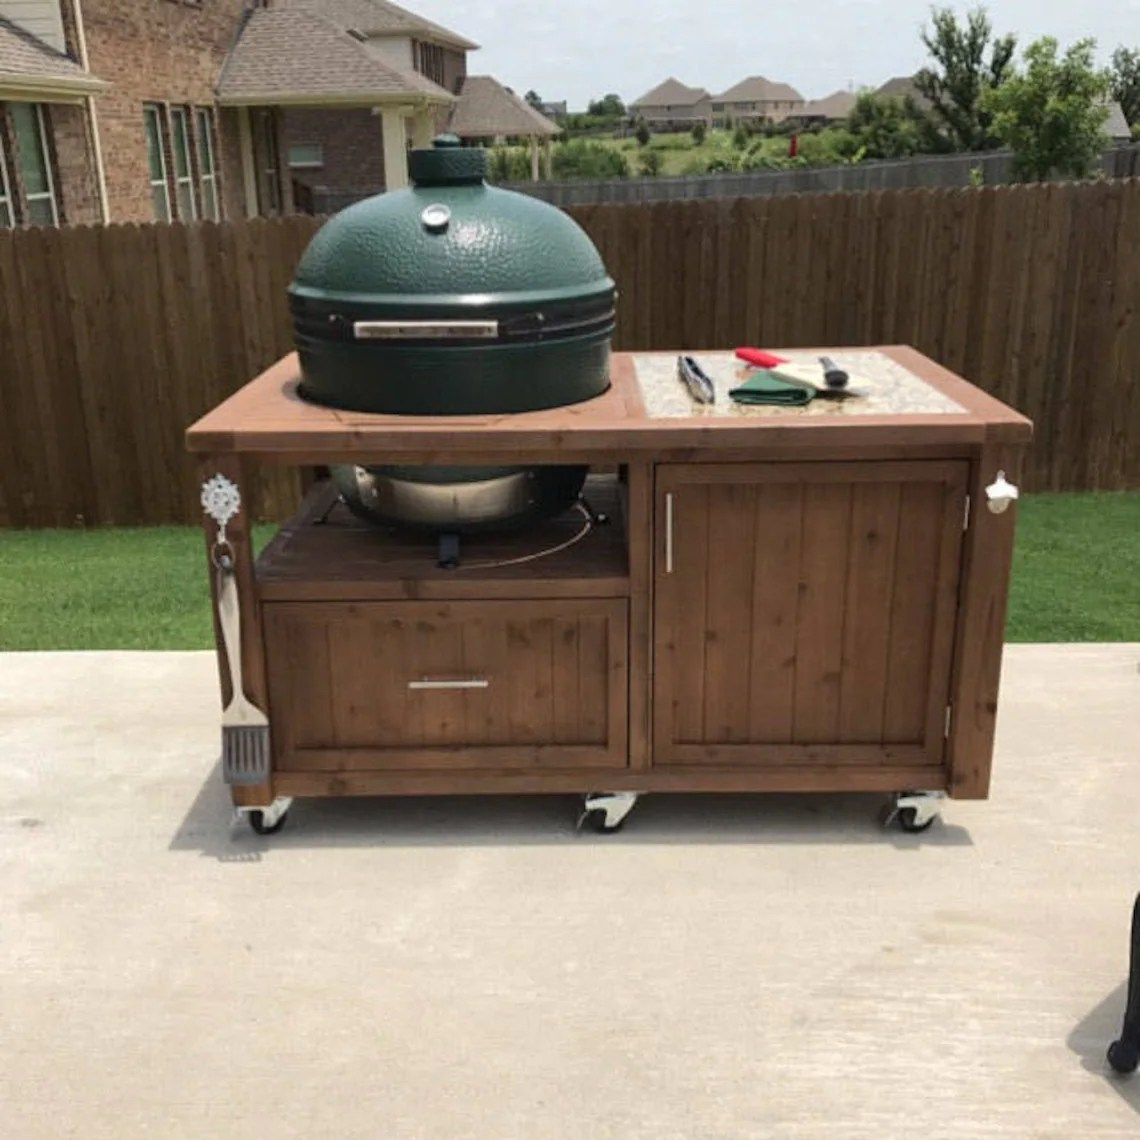 Big Green Egg Outdoor Küche Grill Table Cabinet For Big Green Egg Kamado Joe Primo Other Ceramic Grills Grill Carts Outdoor Kitchen Cabinets